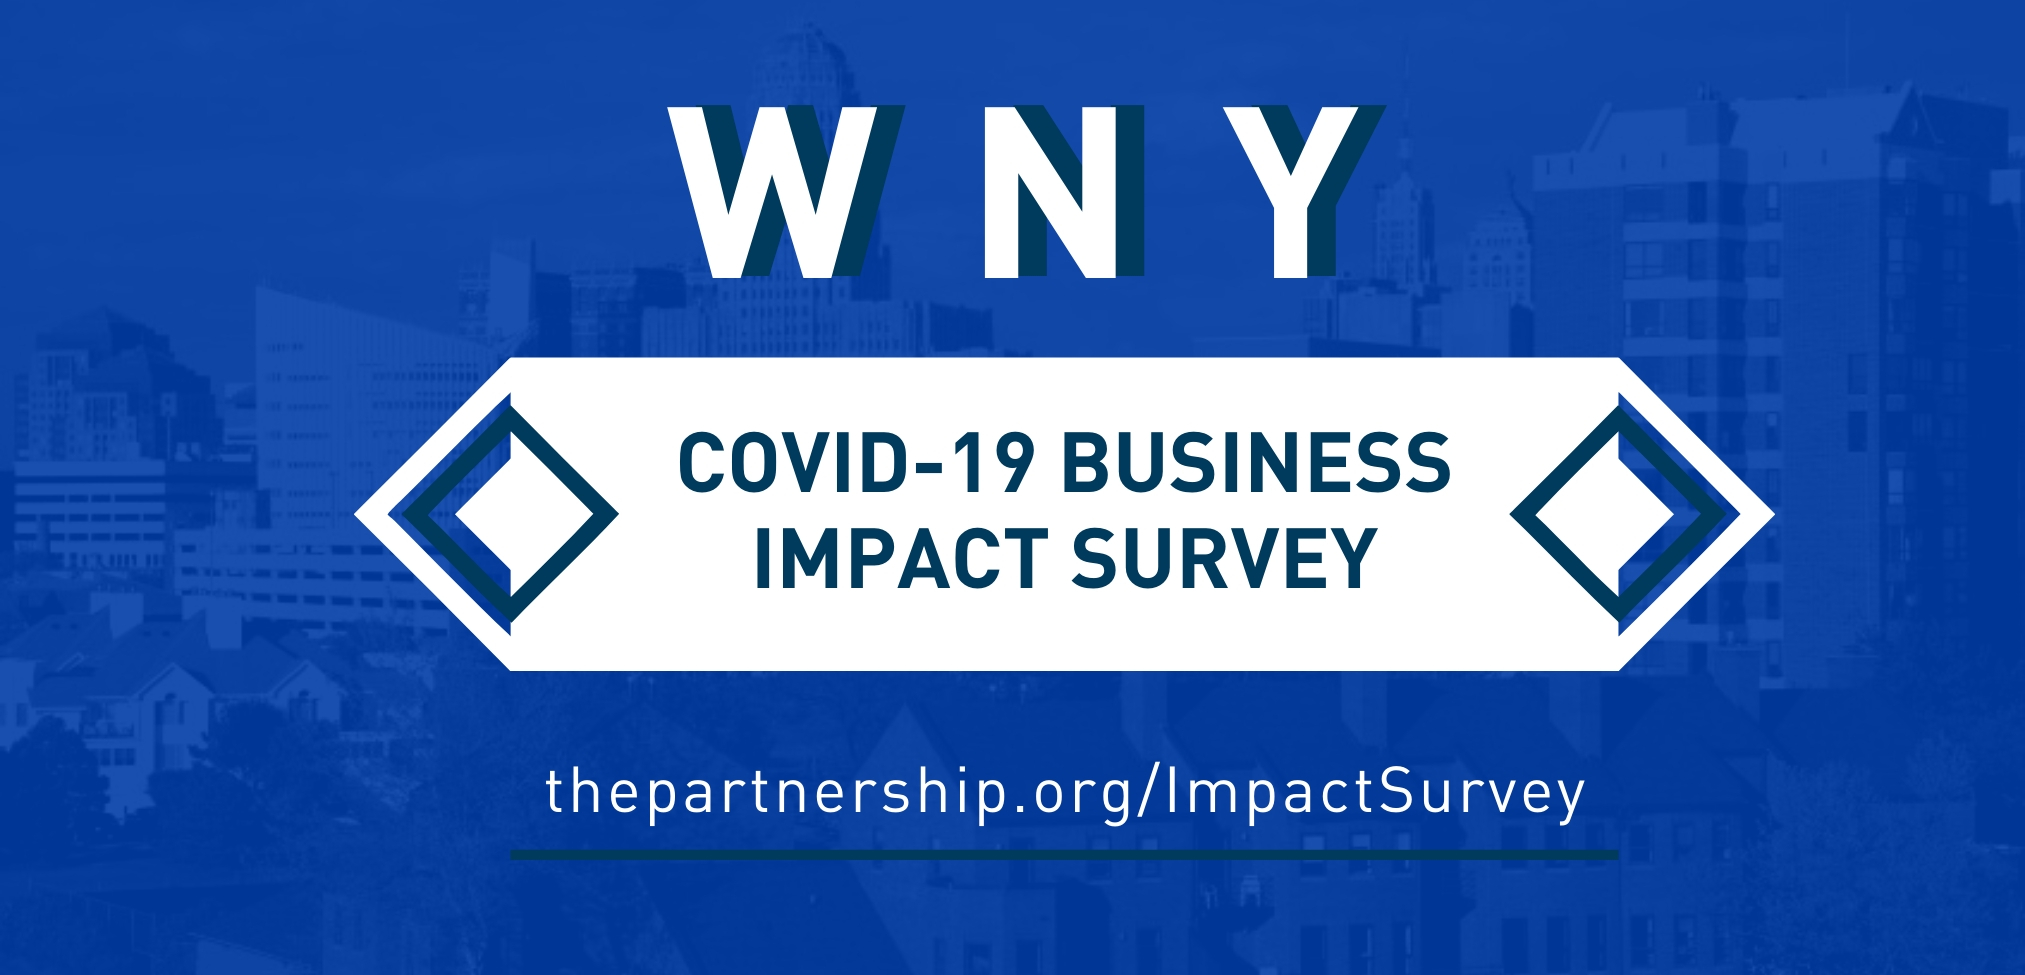 WNY COVID-19 Business Impact Survey